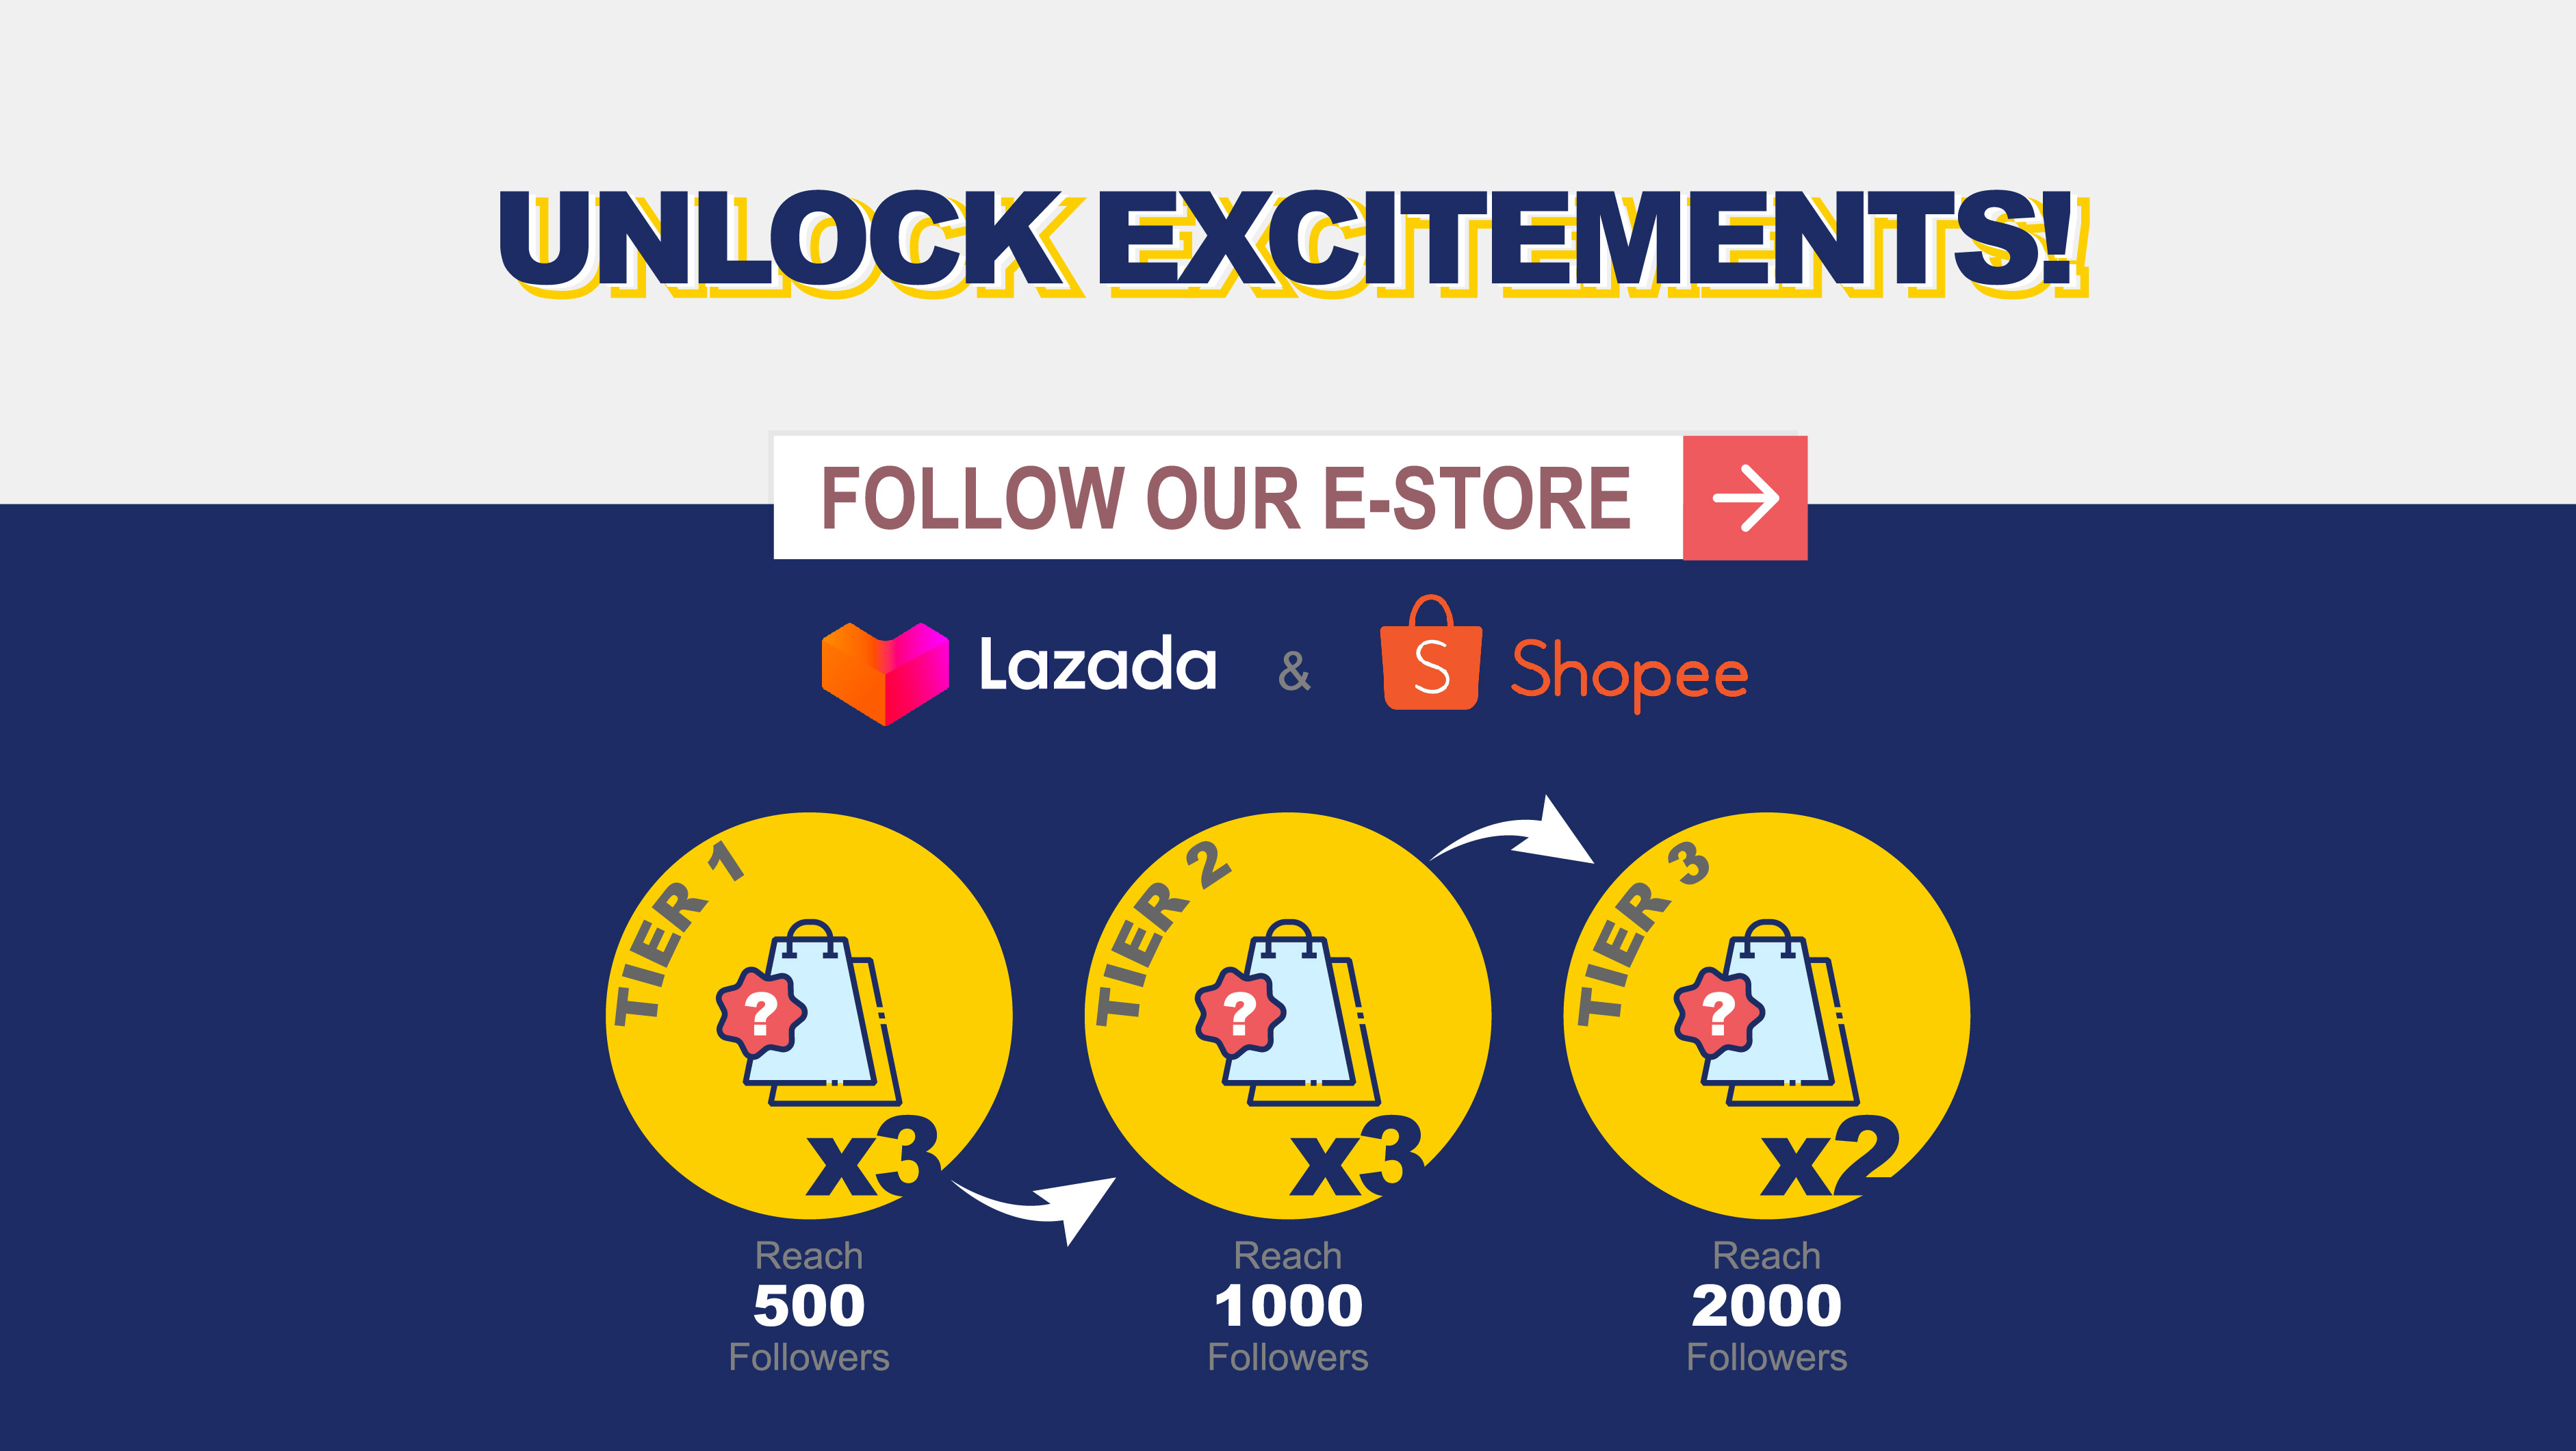 Follow Caixun E-stores and stand a chance to win BIG vouchers!